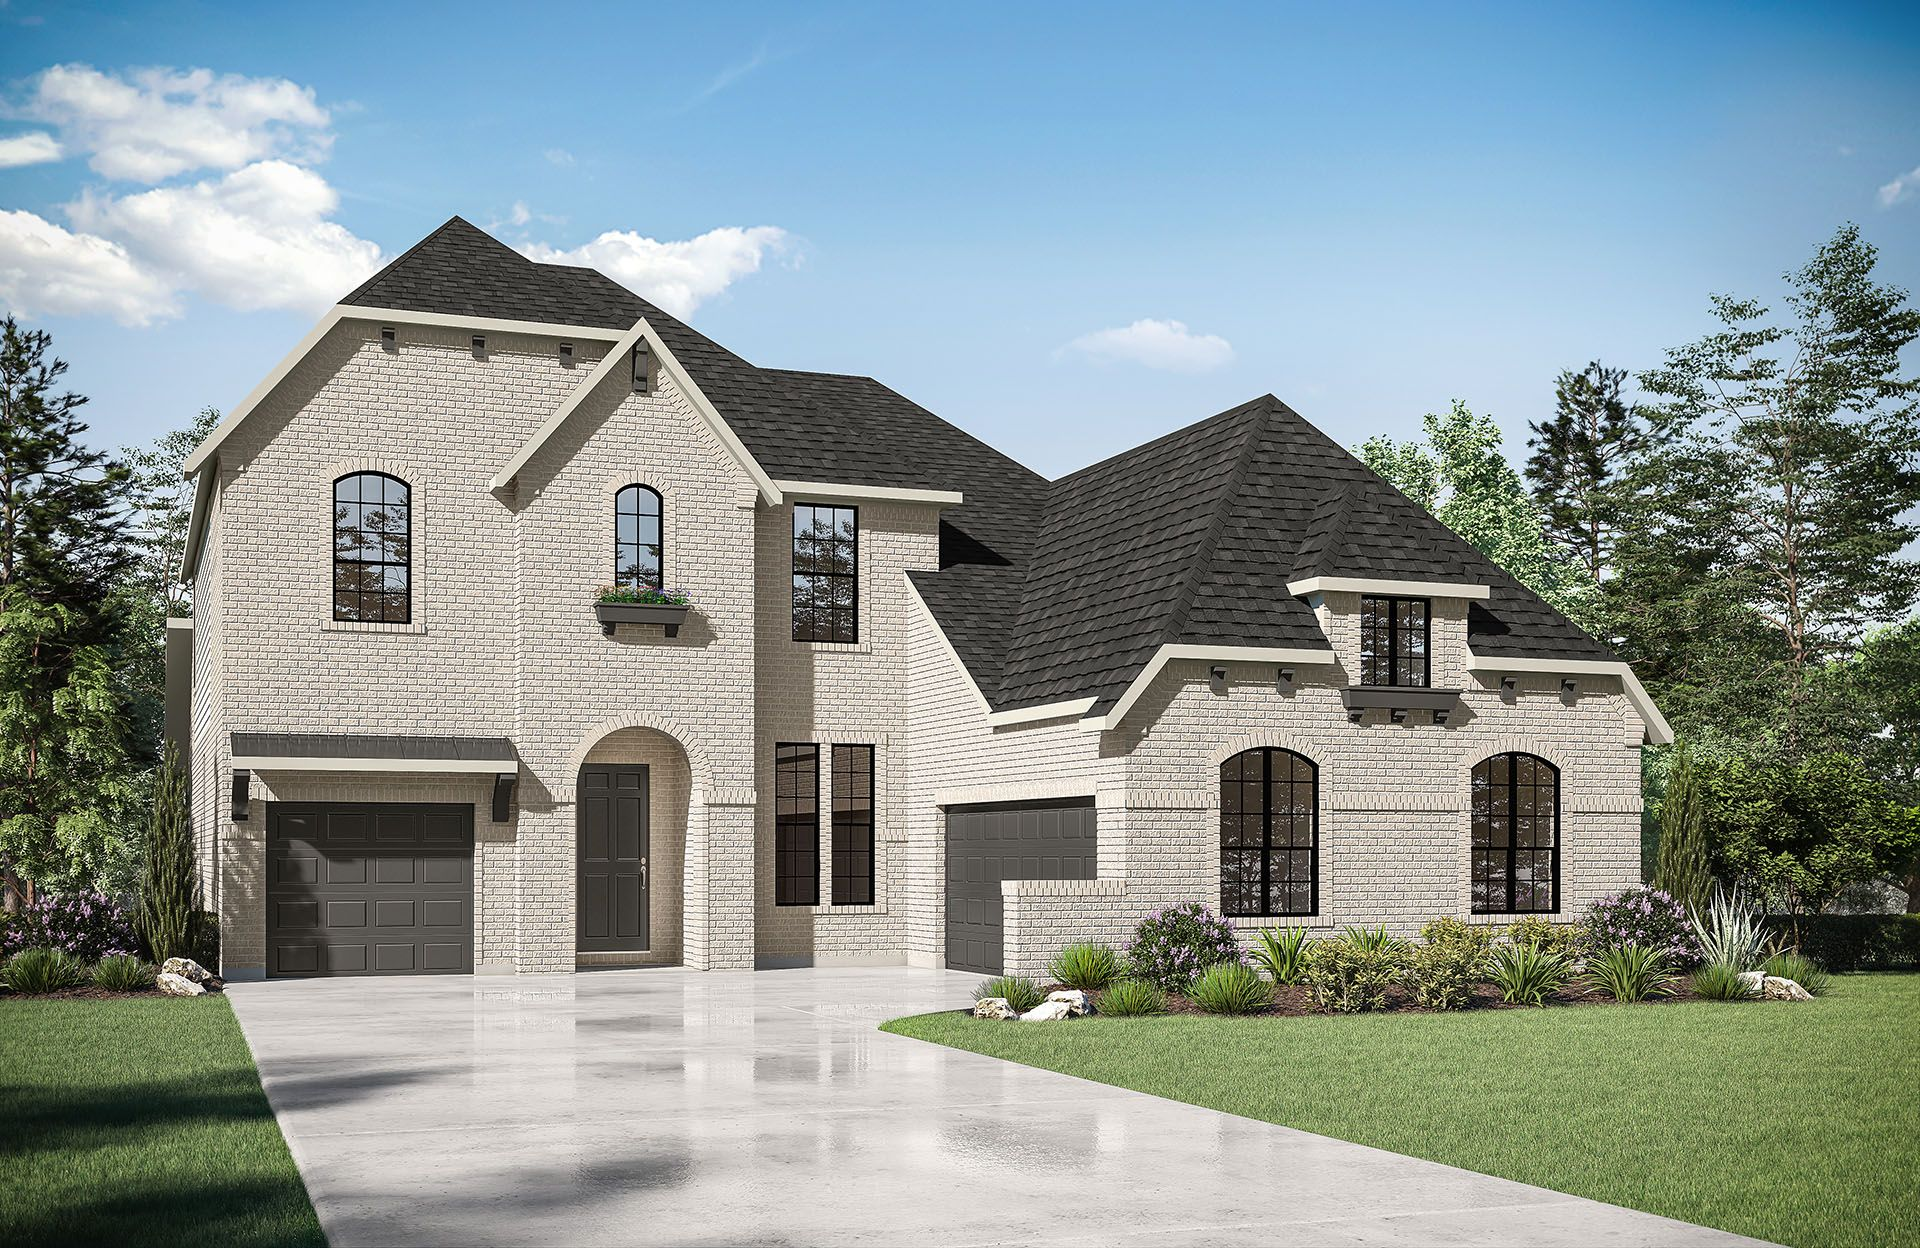 Single Family for Active at Villas Of Hogan's Glen - Deerfield J 20 Katie Lane Trophy Club, Texas 76262 United States